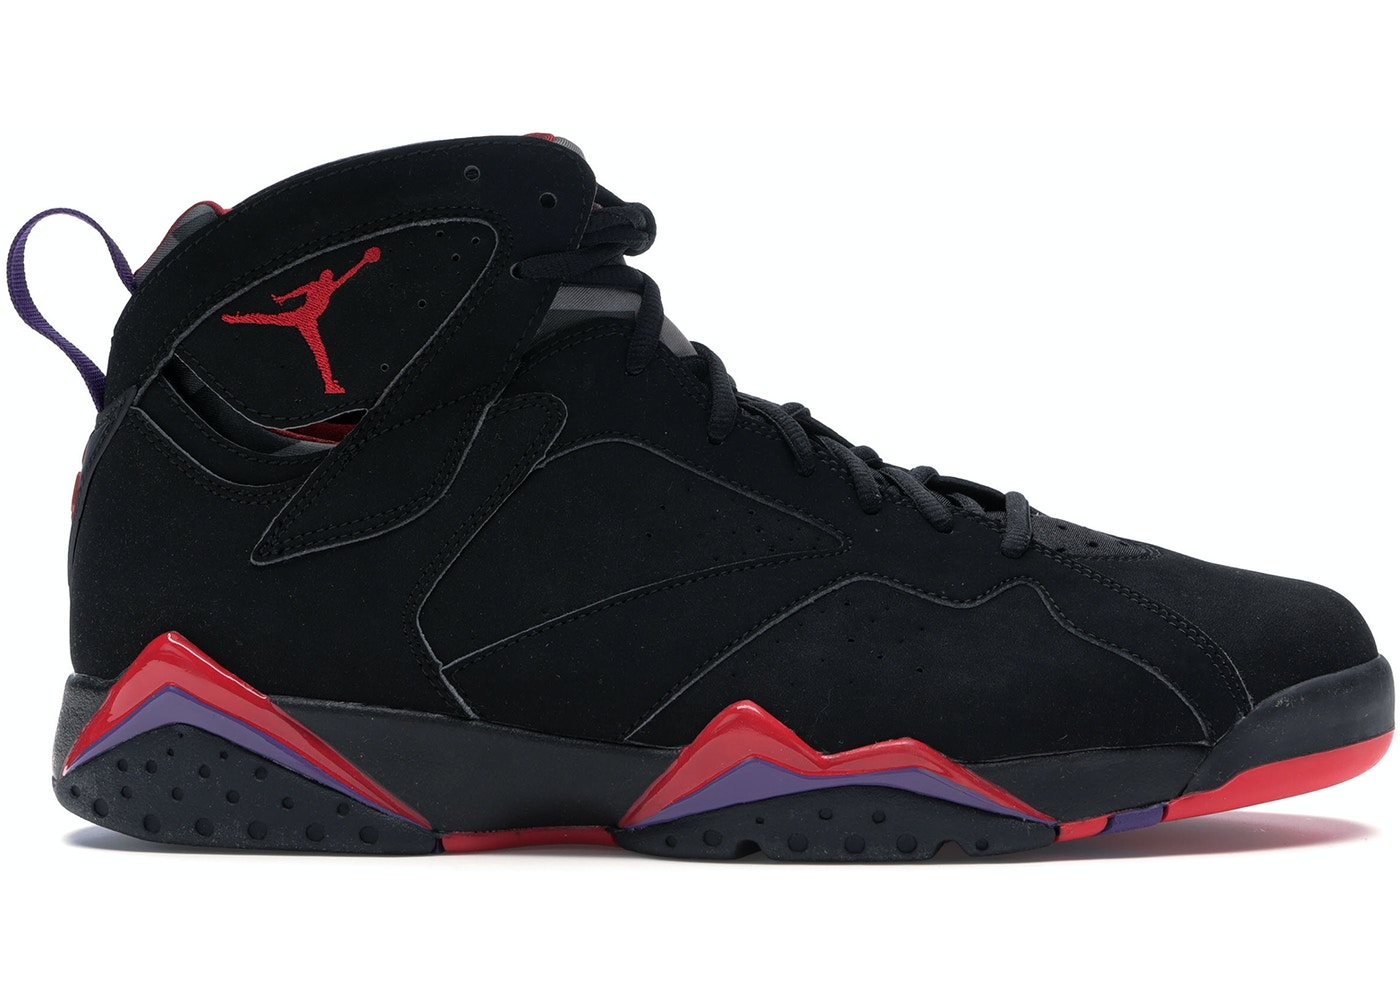 buy online 7d707 6e600 Buy Air Jordan 7 Shoes & Deadstock Sneakers